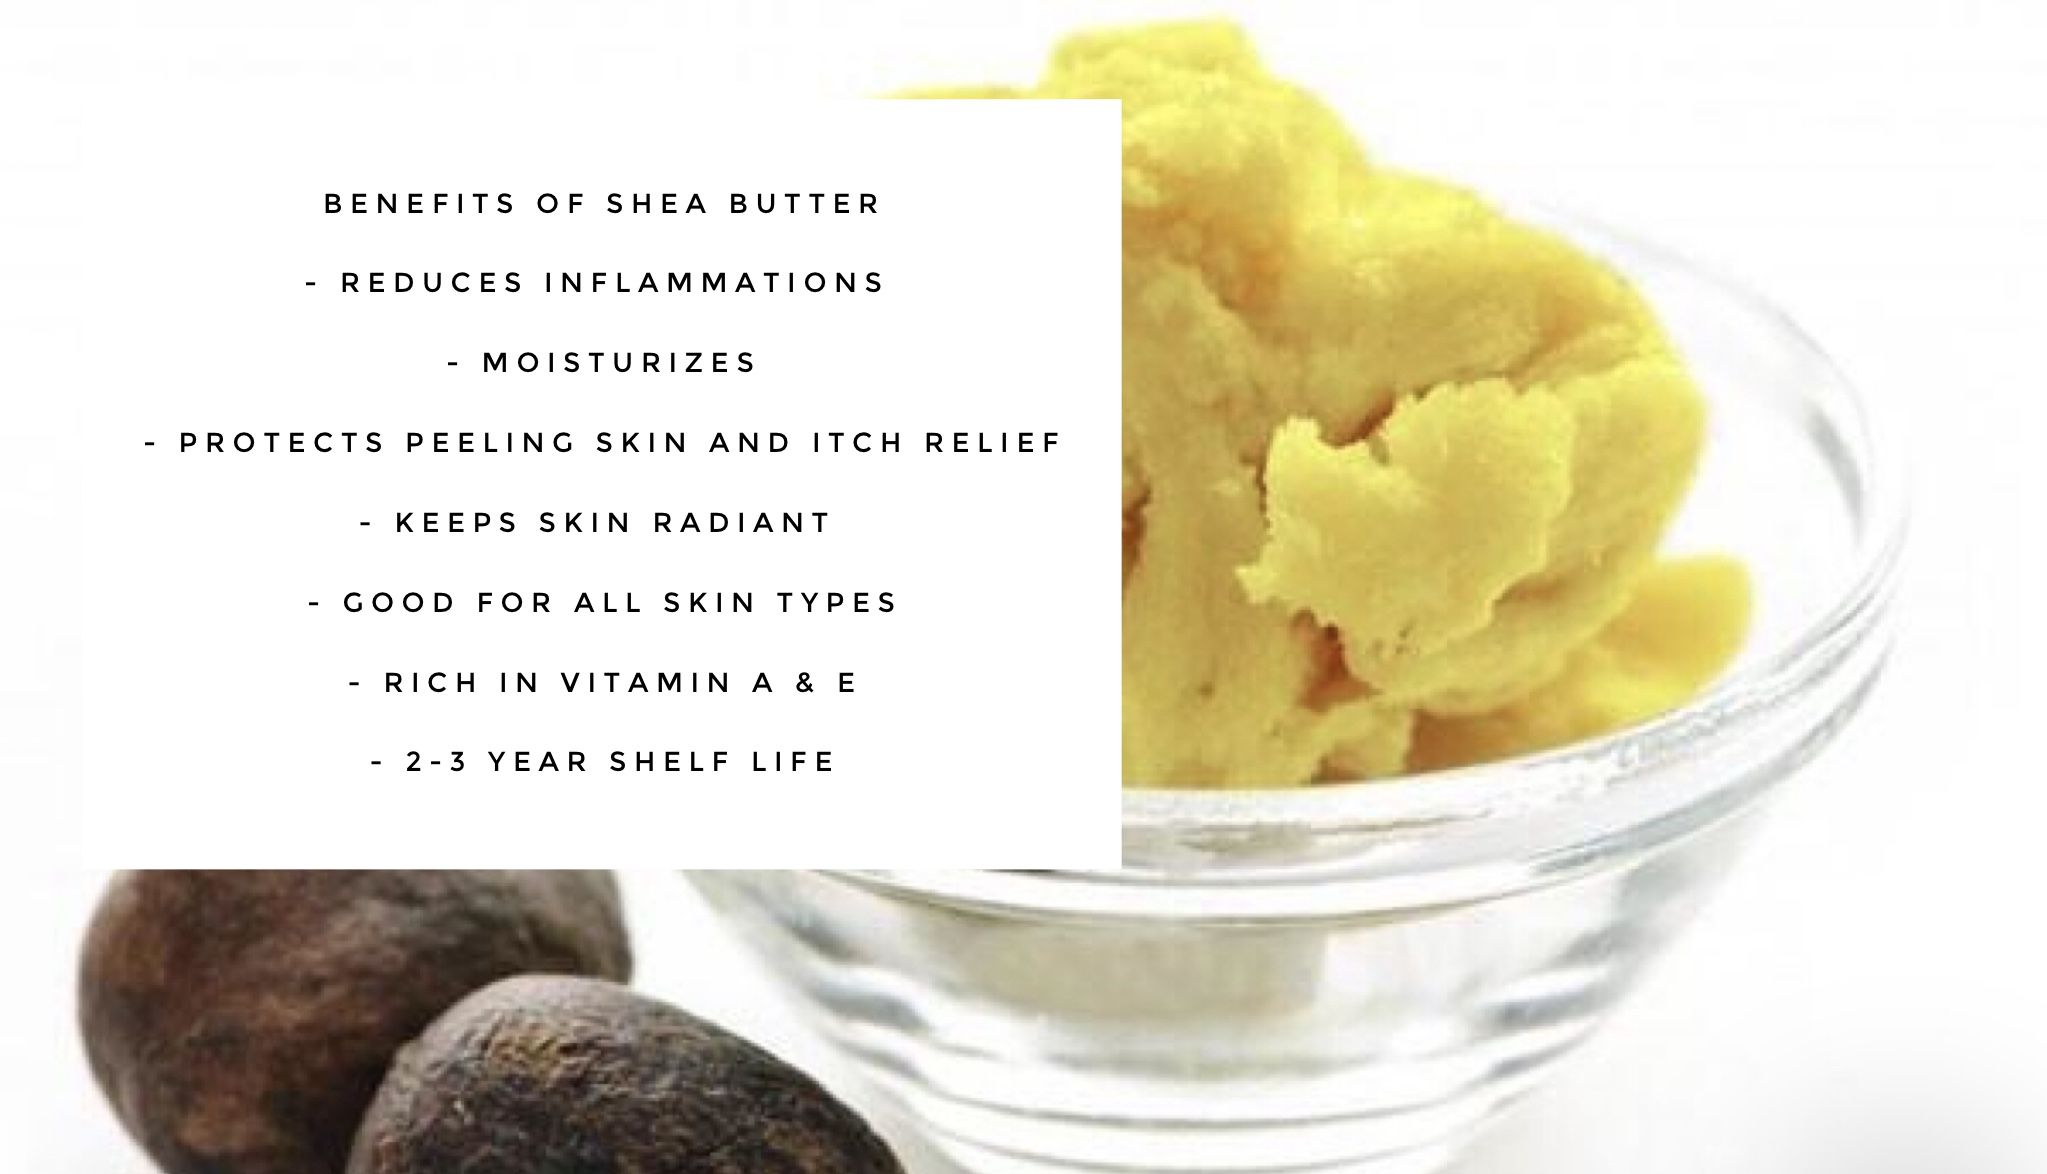 Benefits Of Shea Butter And Skincare Sheabutter